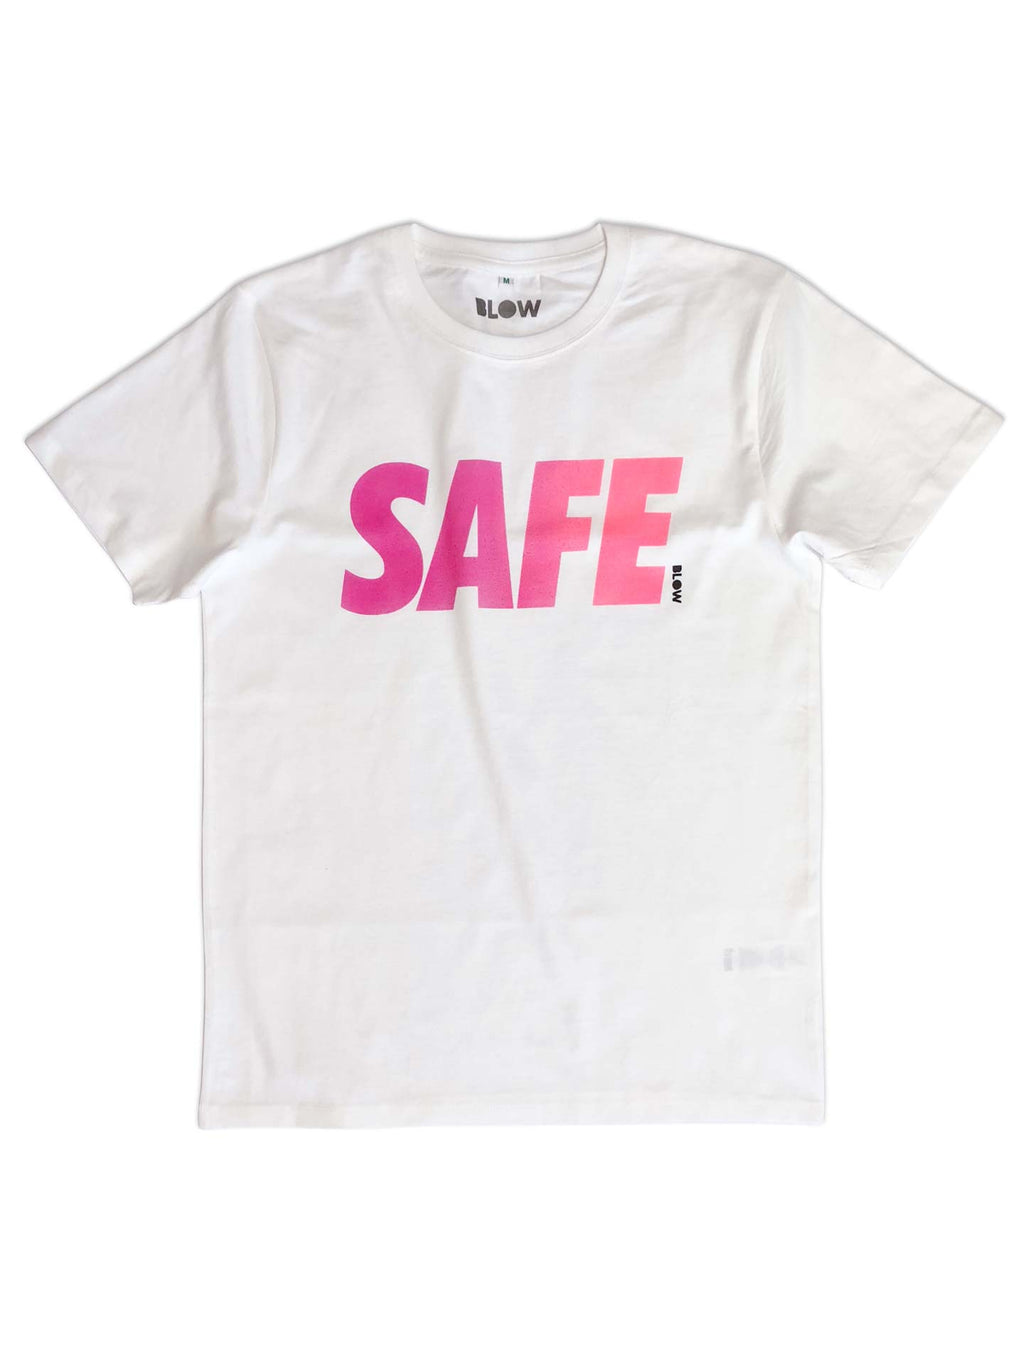 SAFE (P) - Unisex premium short sleeve t-shirt